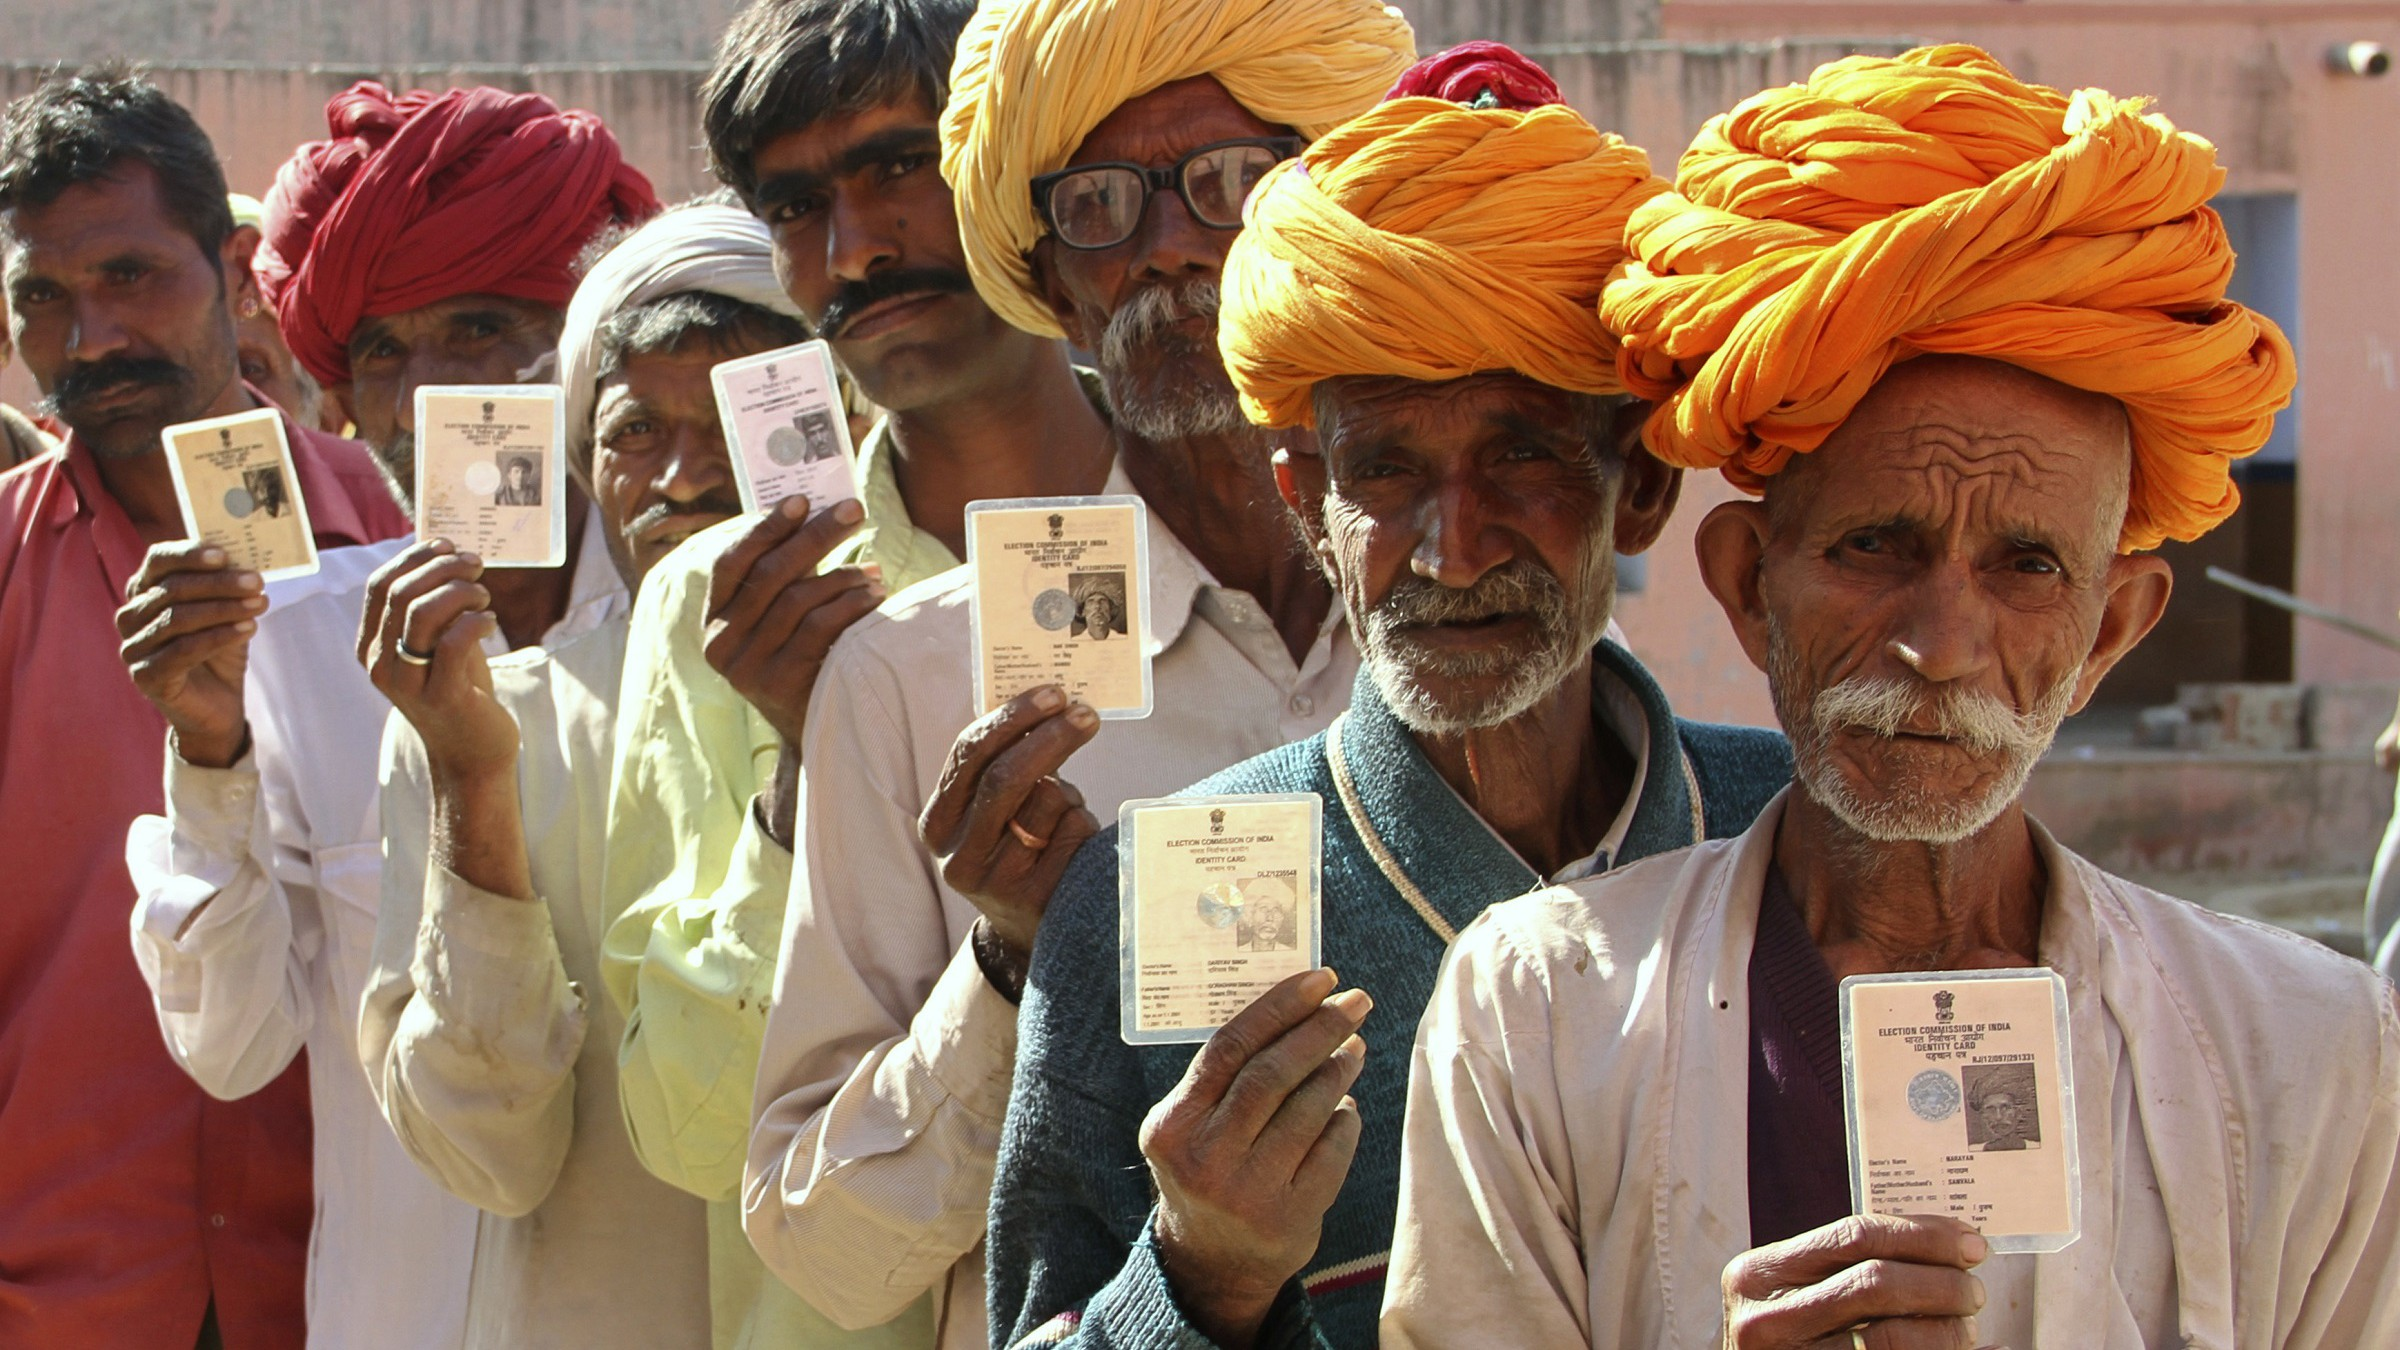 Villagers pose with their identity cards as they stand in line to open a bank account at a camp organised by a private bank in a village at Ajmer in the desert Indian state of Rajasthan, January 10, 2013. New Delhi plans to directly transfer cash payments for subsidies into these accounts, a move aimed at tackling graft in India's creaky, corruption-ridden public distribution system. If successful, the initiative could also bring modern banking to the doorstep of rural India, a goal towards which progress has so far been fitful despite mandatory targets set by the government and Reserve Bank of India. Picture taken January 10, 2013. To match Feature INDIA-RURAL/BANKS REUTERS/Stringer (INDIA - Tags: POLITICS SOCIETY POVERTY BUSINESS) - RTR3CPLC